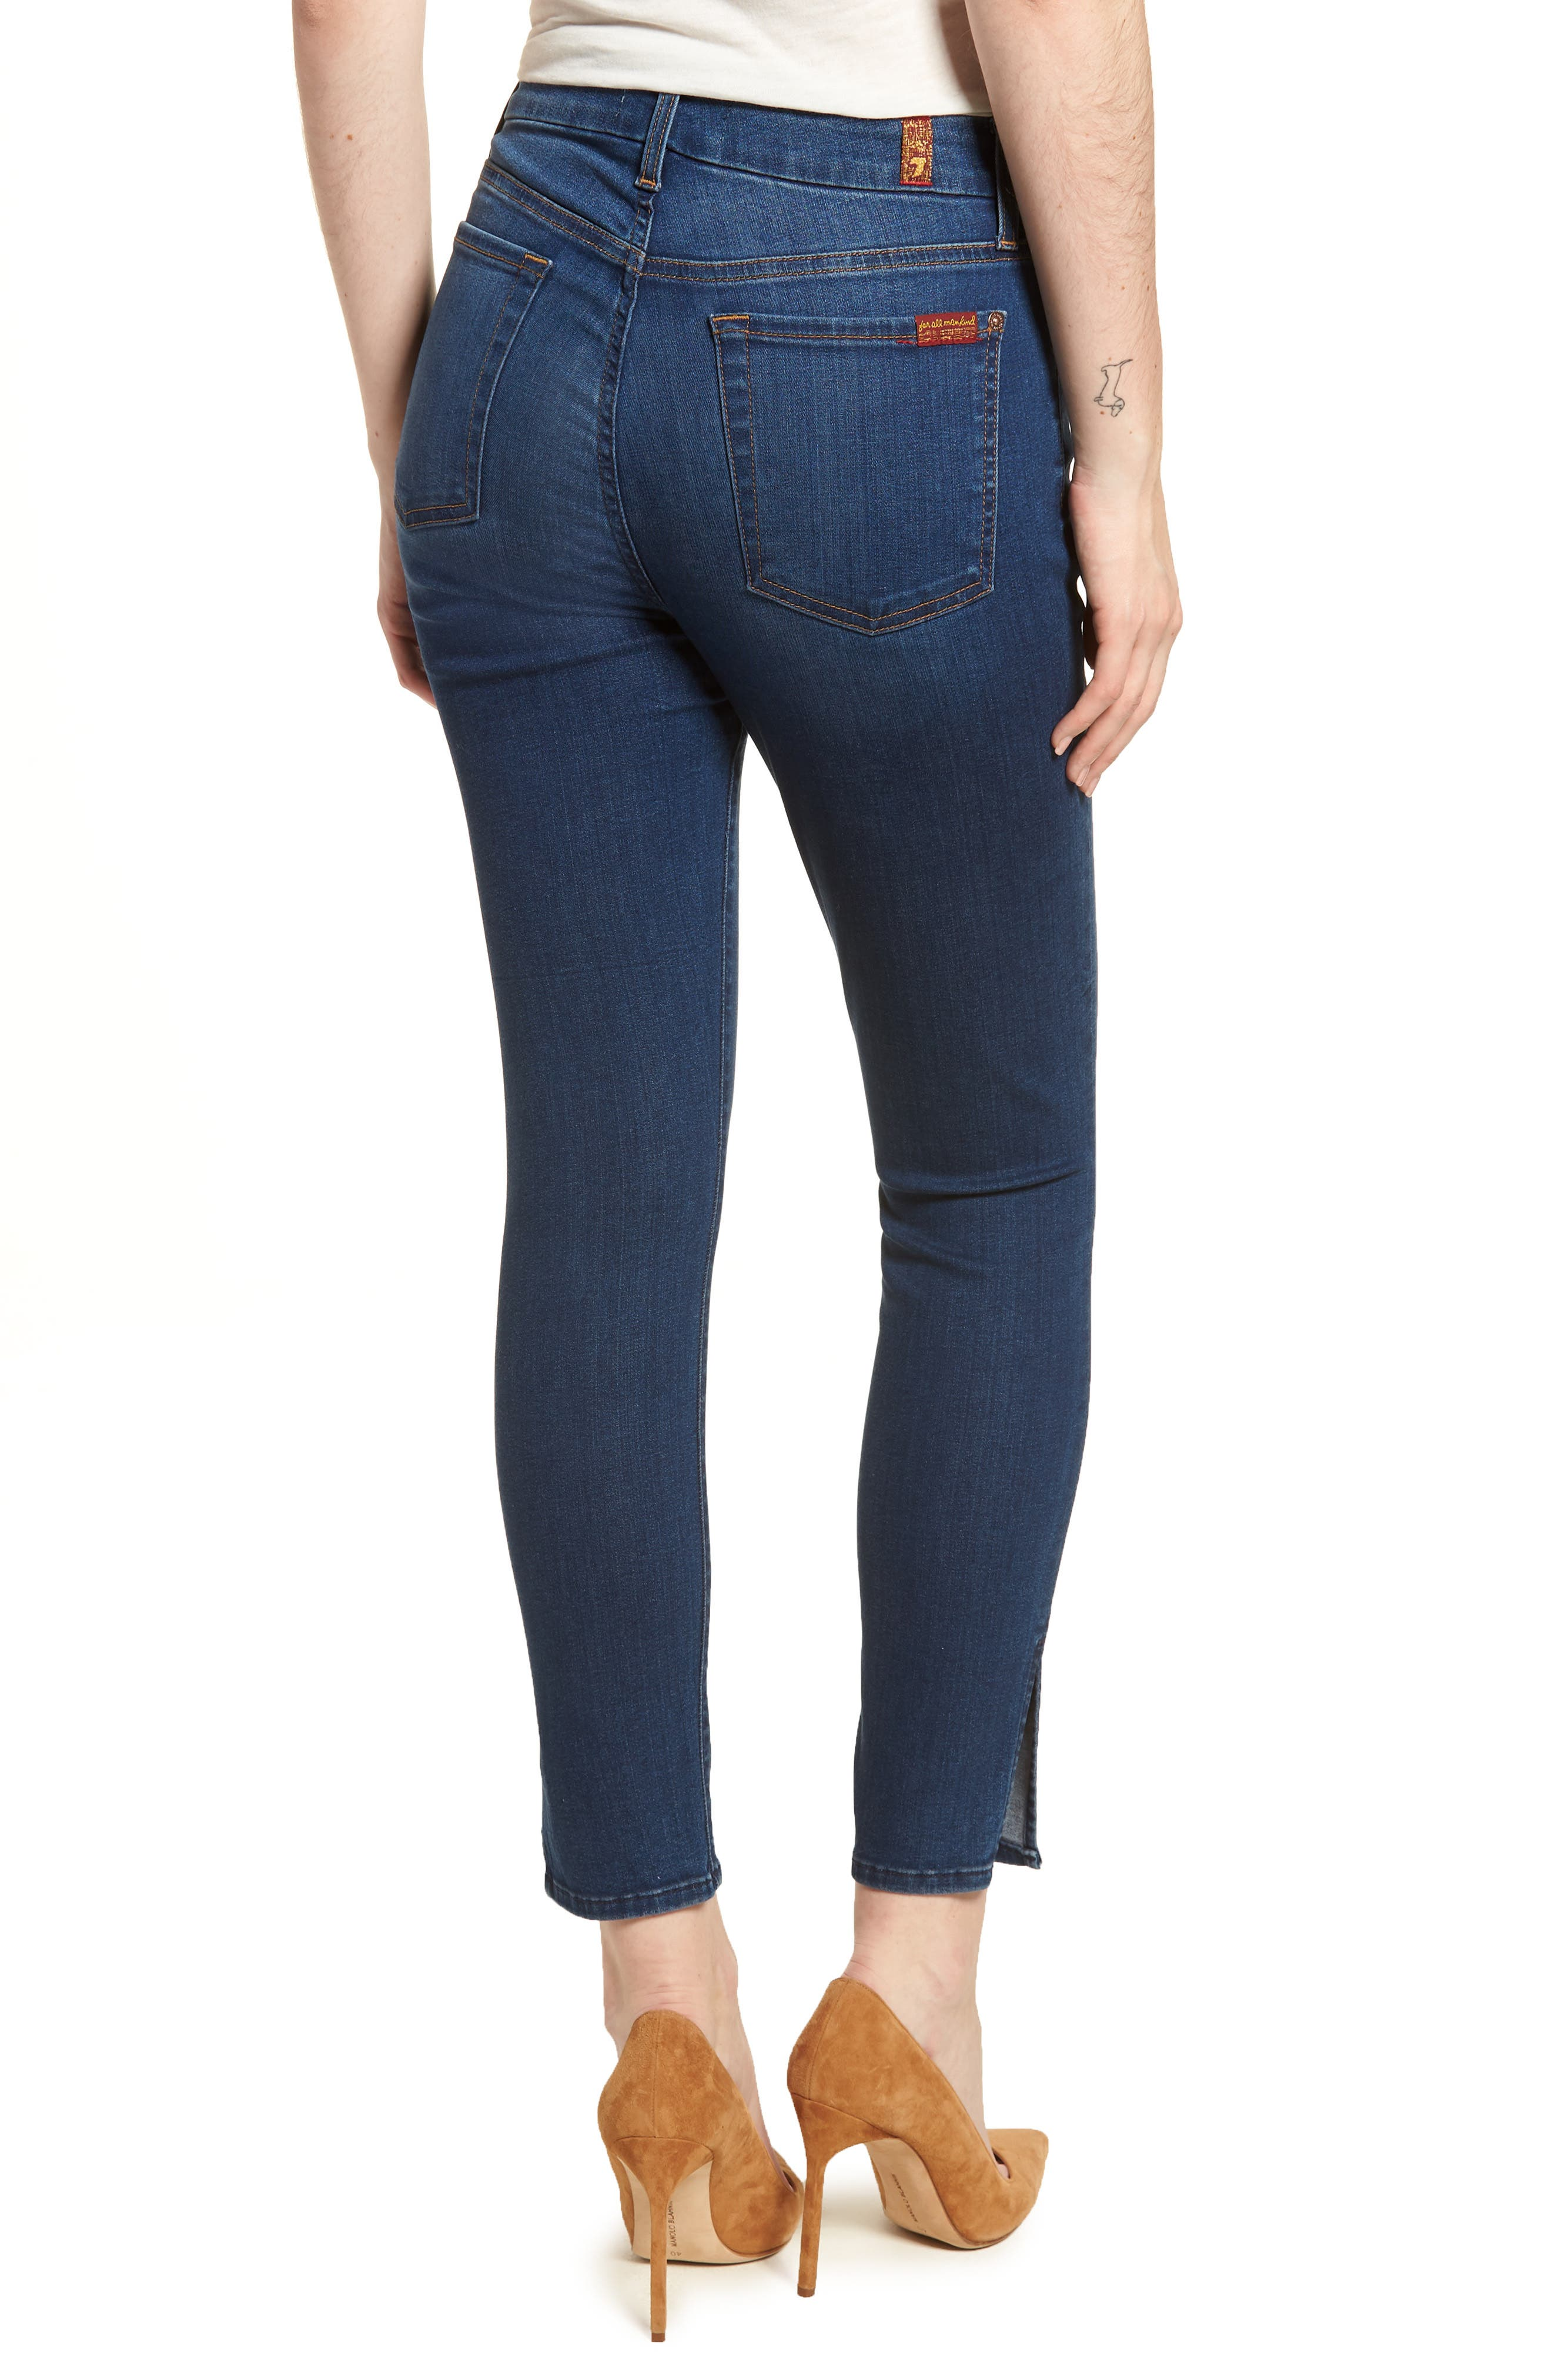 b(air) - Aubrey High Waist Skinny Jeans,                             Alternate thumbnail 2, color,                             400